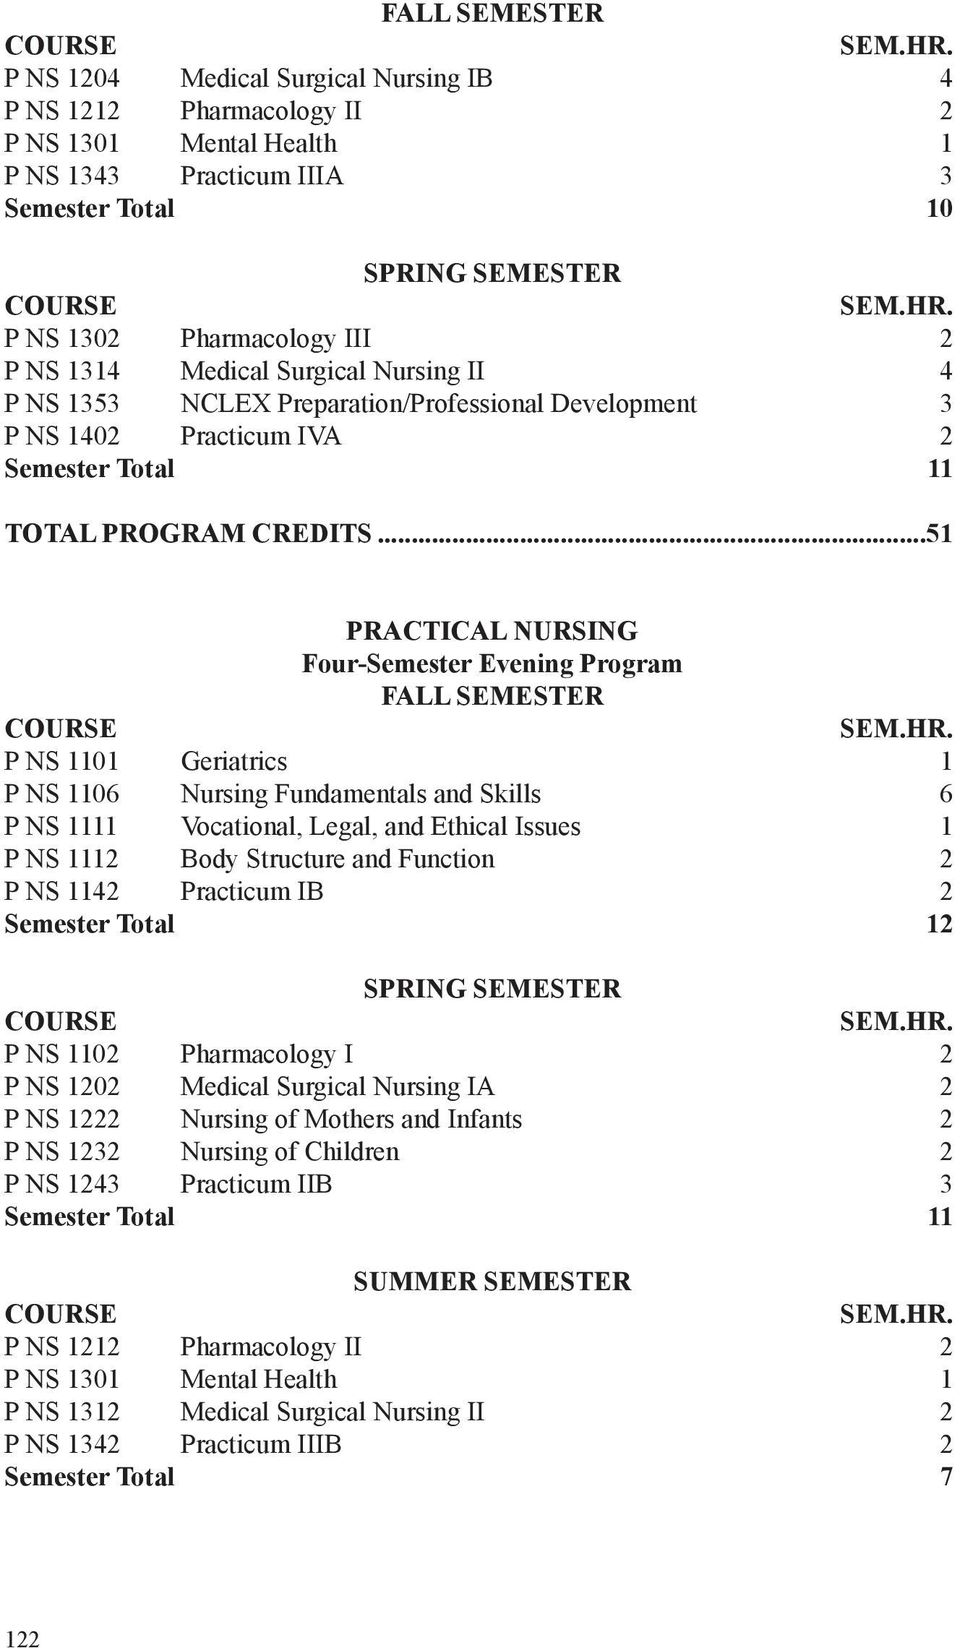 ..51 PRACTICAL NURSING Four-Semester Evening Program FALL SEMESTER P NS 1101 Geriatrics 1 P NS 1106 Nursing Fundamentals and Skills 6 P NS 1111 Vocational, Legal, and Ethical Issues 1 P NS 1112 Body